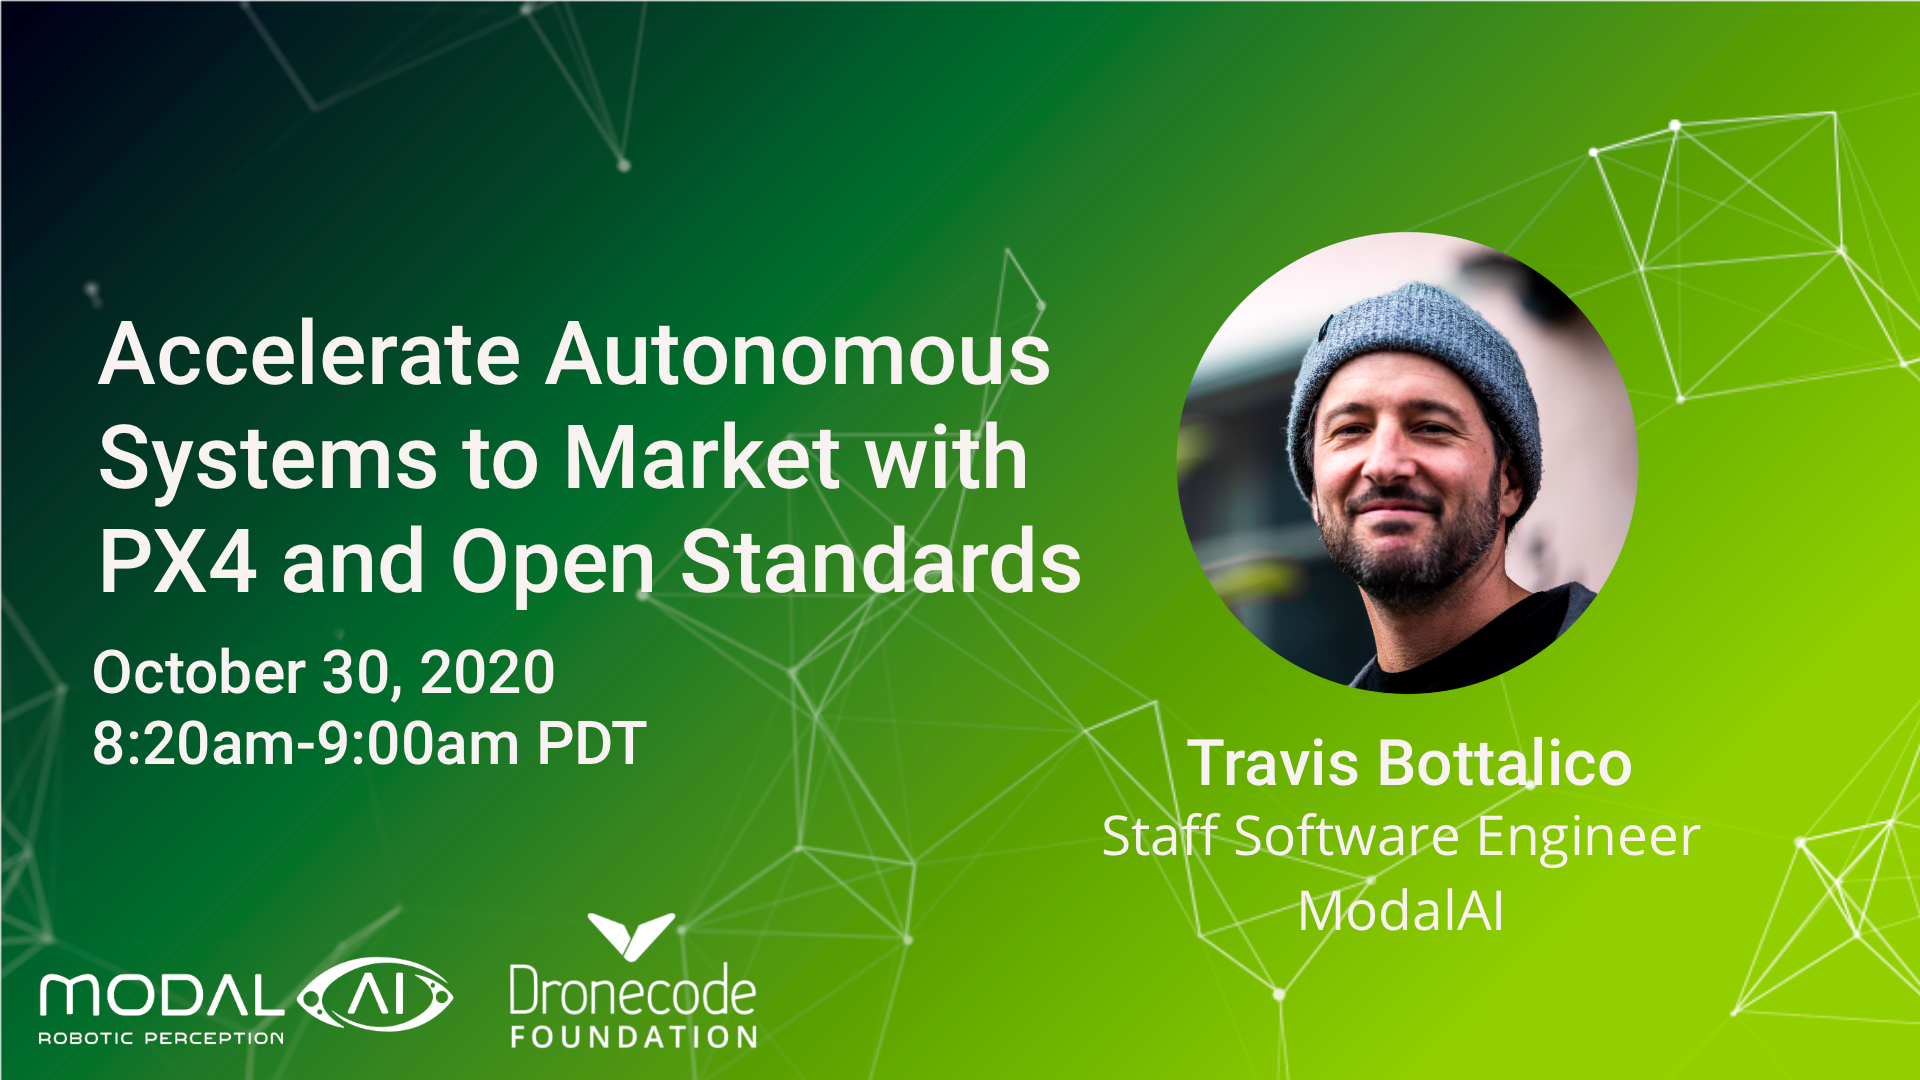 Accelerate autonomous systems to market with PX4 and open standards October 30, 2020 8:20am-9:00am PDT